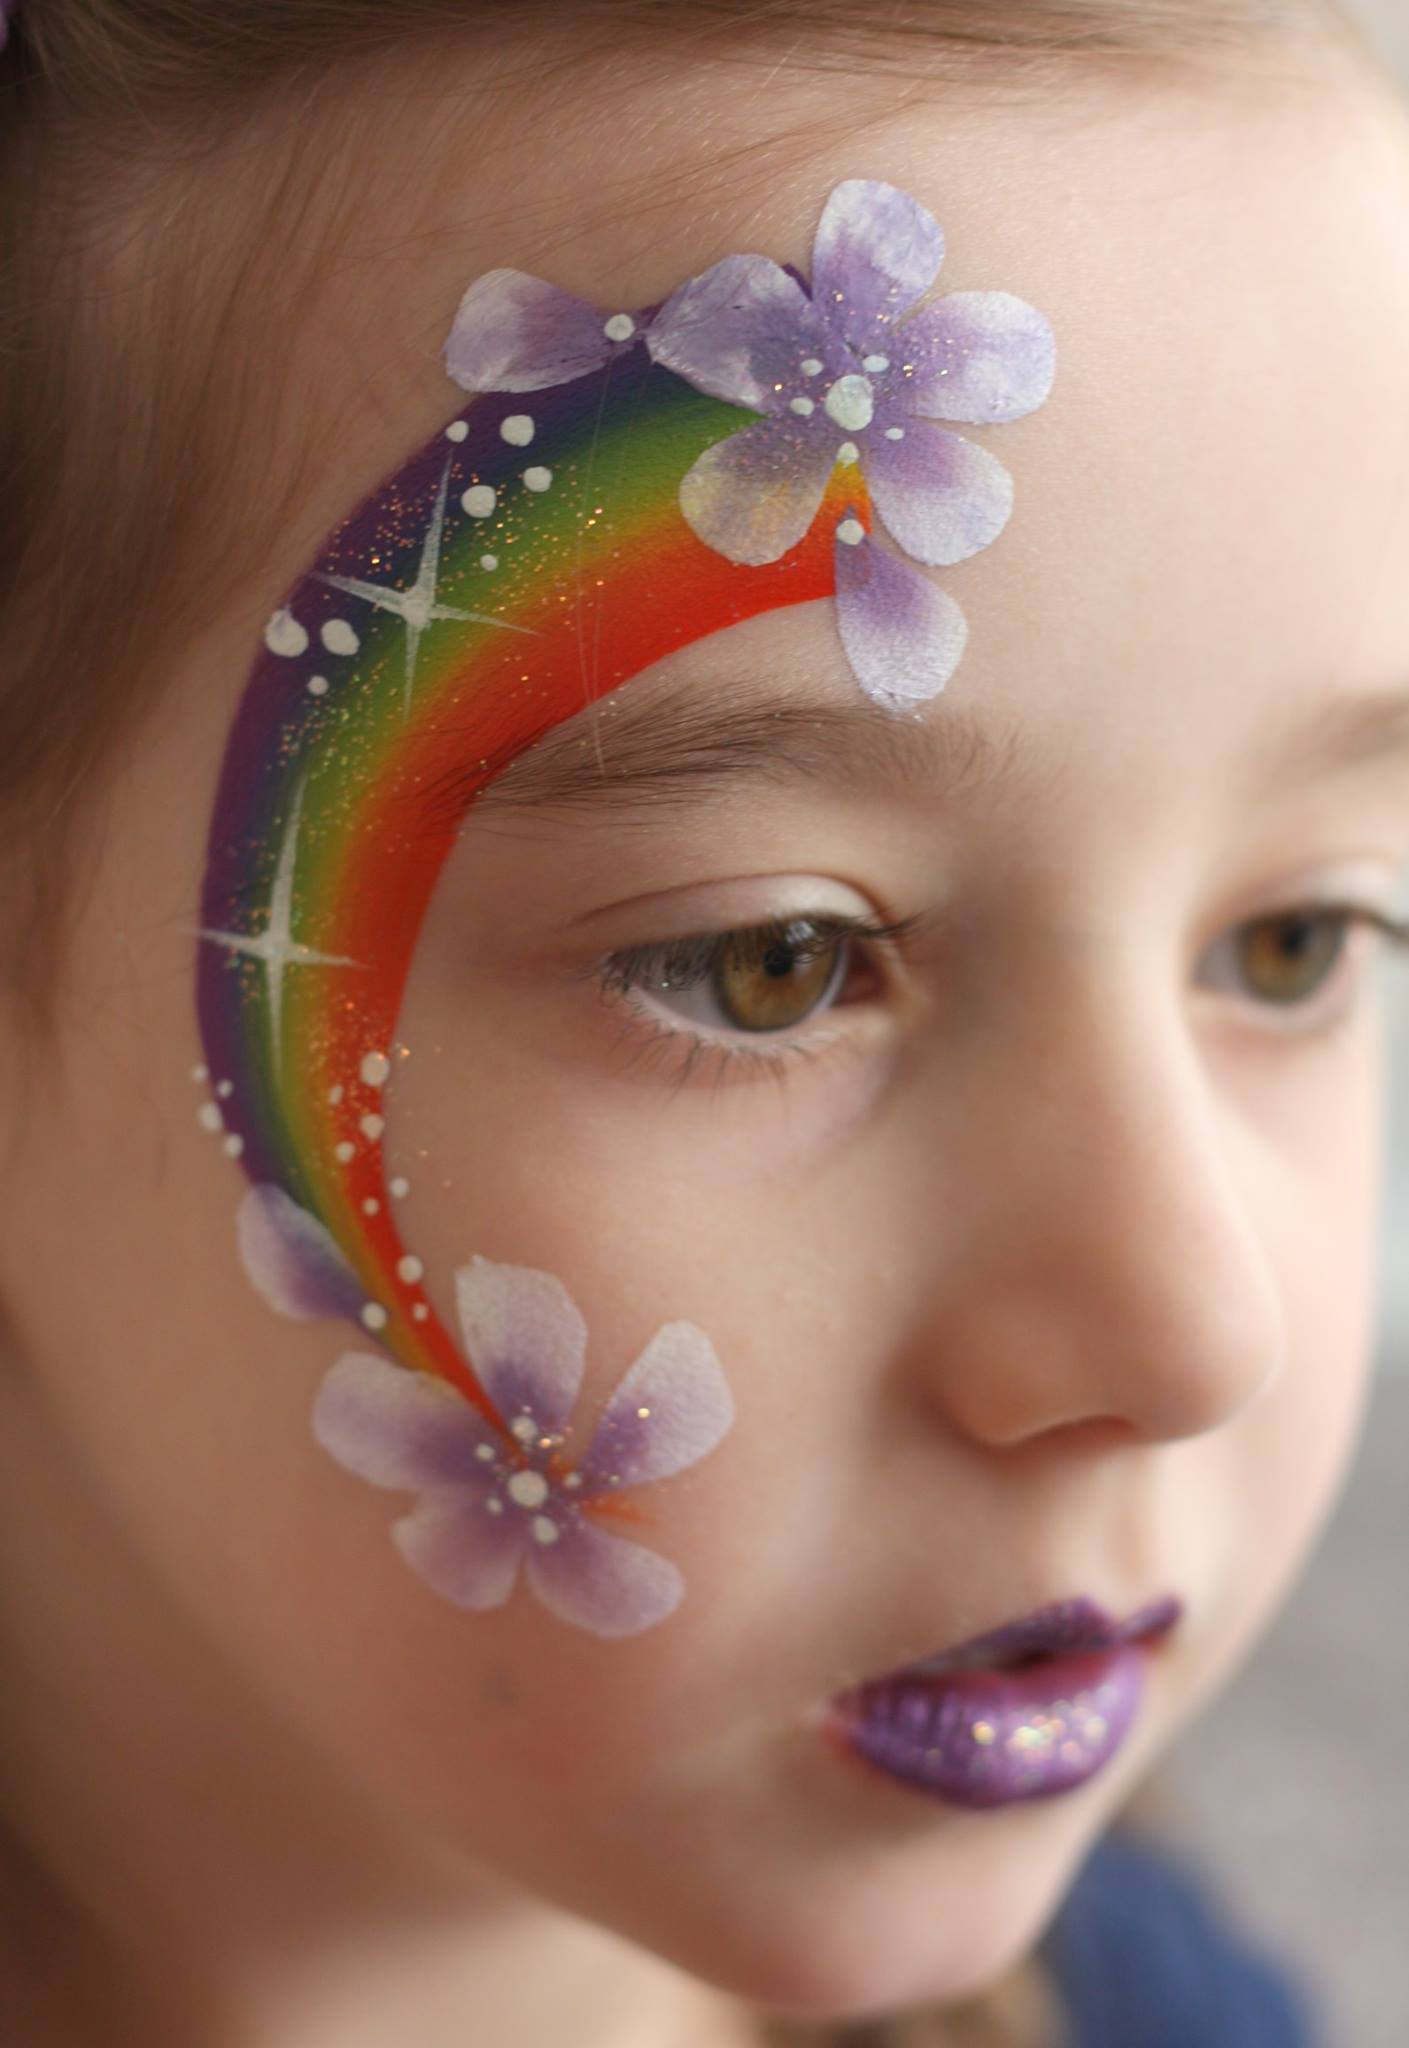 Nadine's Dreams Face Painting - Calgary Face Painter ...